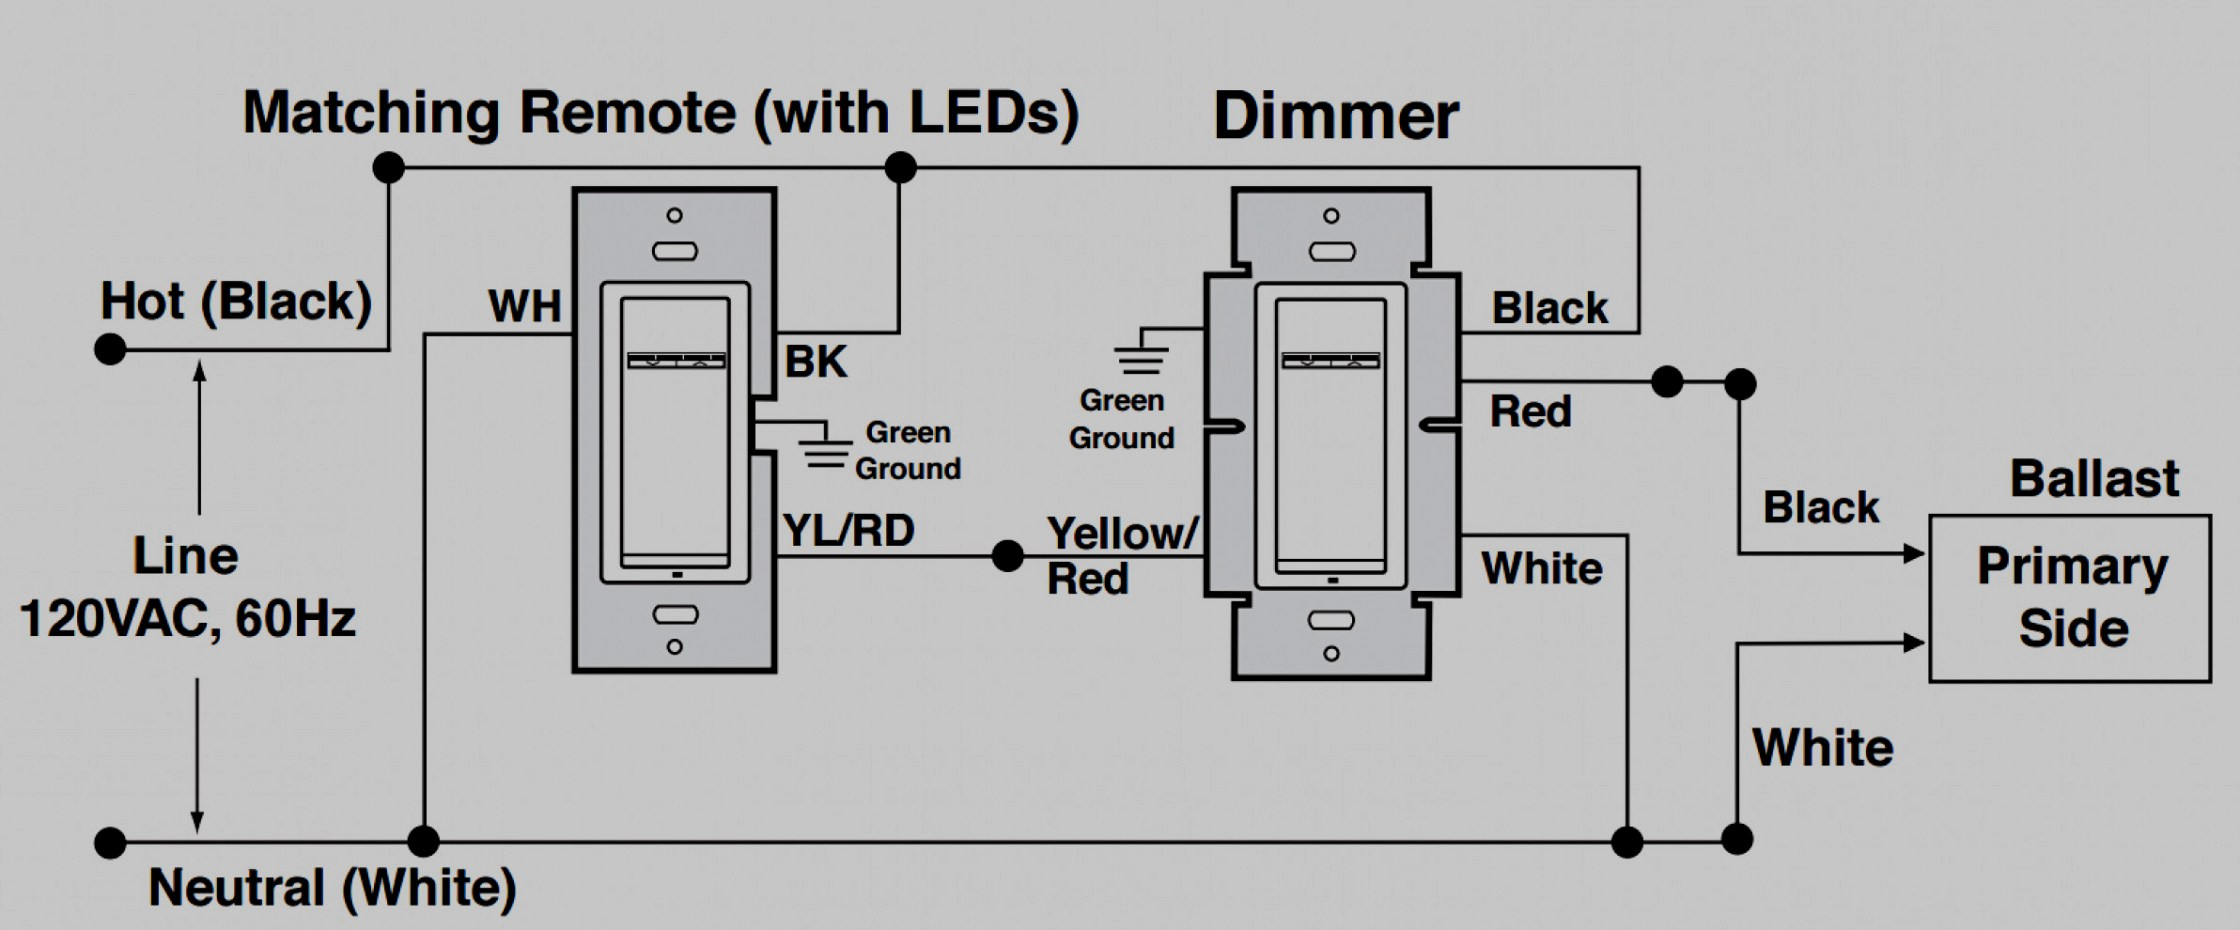 3 Way Transfer Switch Wiring Diagram | Best Wiring Library - Lutron Cl Dimmer Wiring Diagram